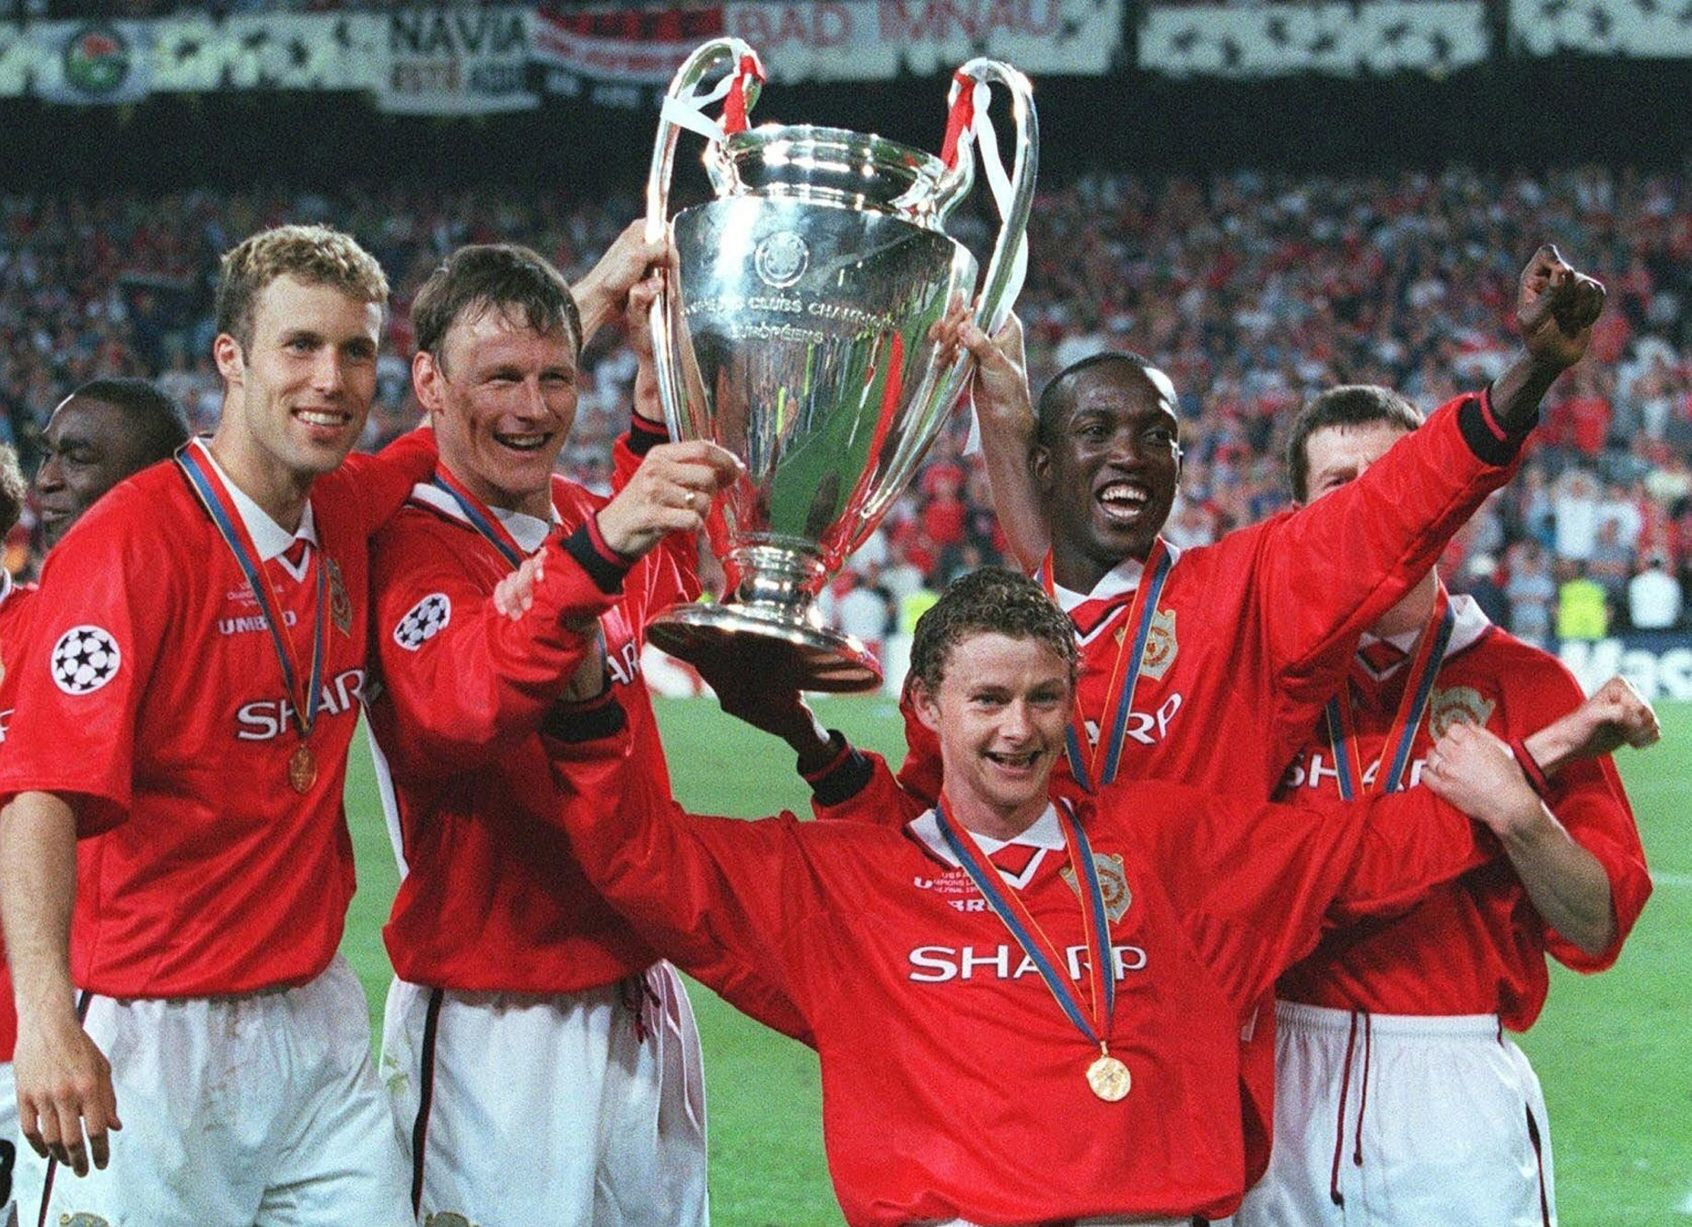 Manchester United 99 Champions League Final